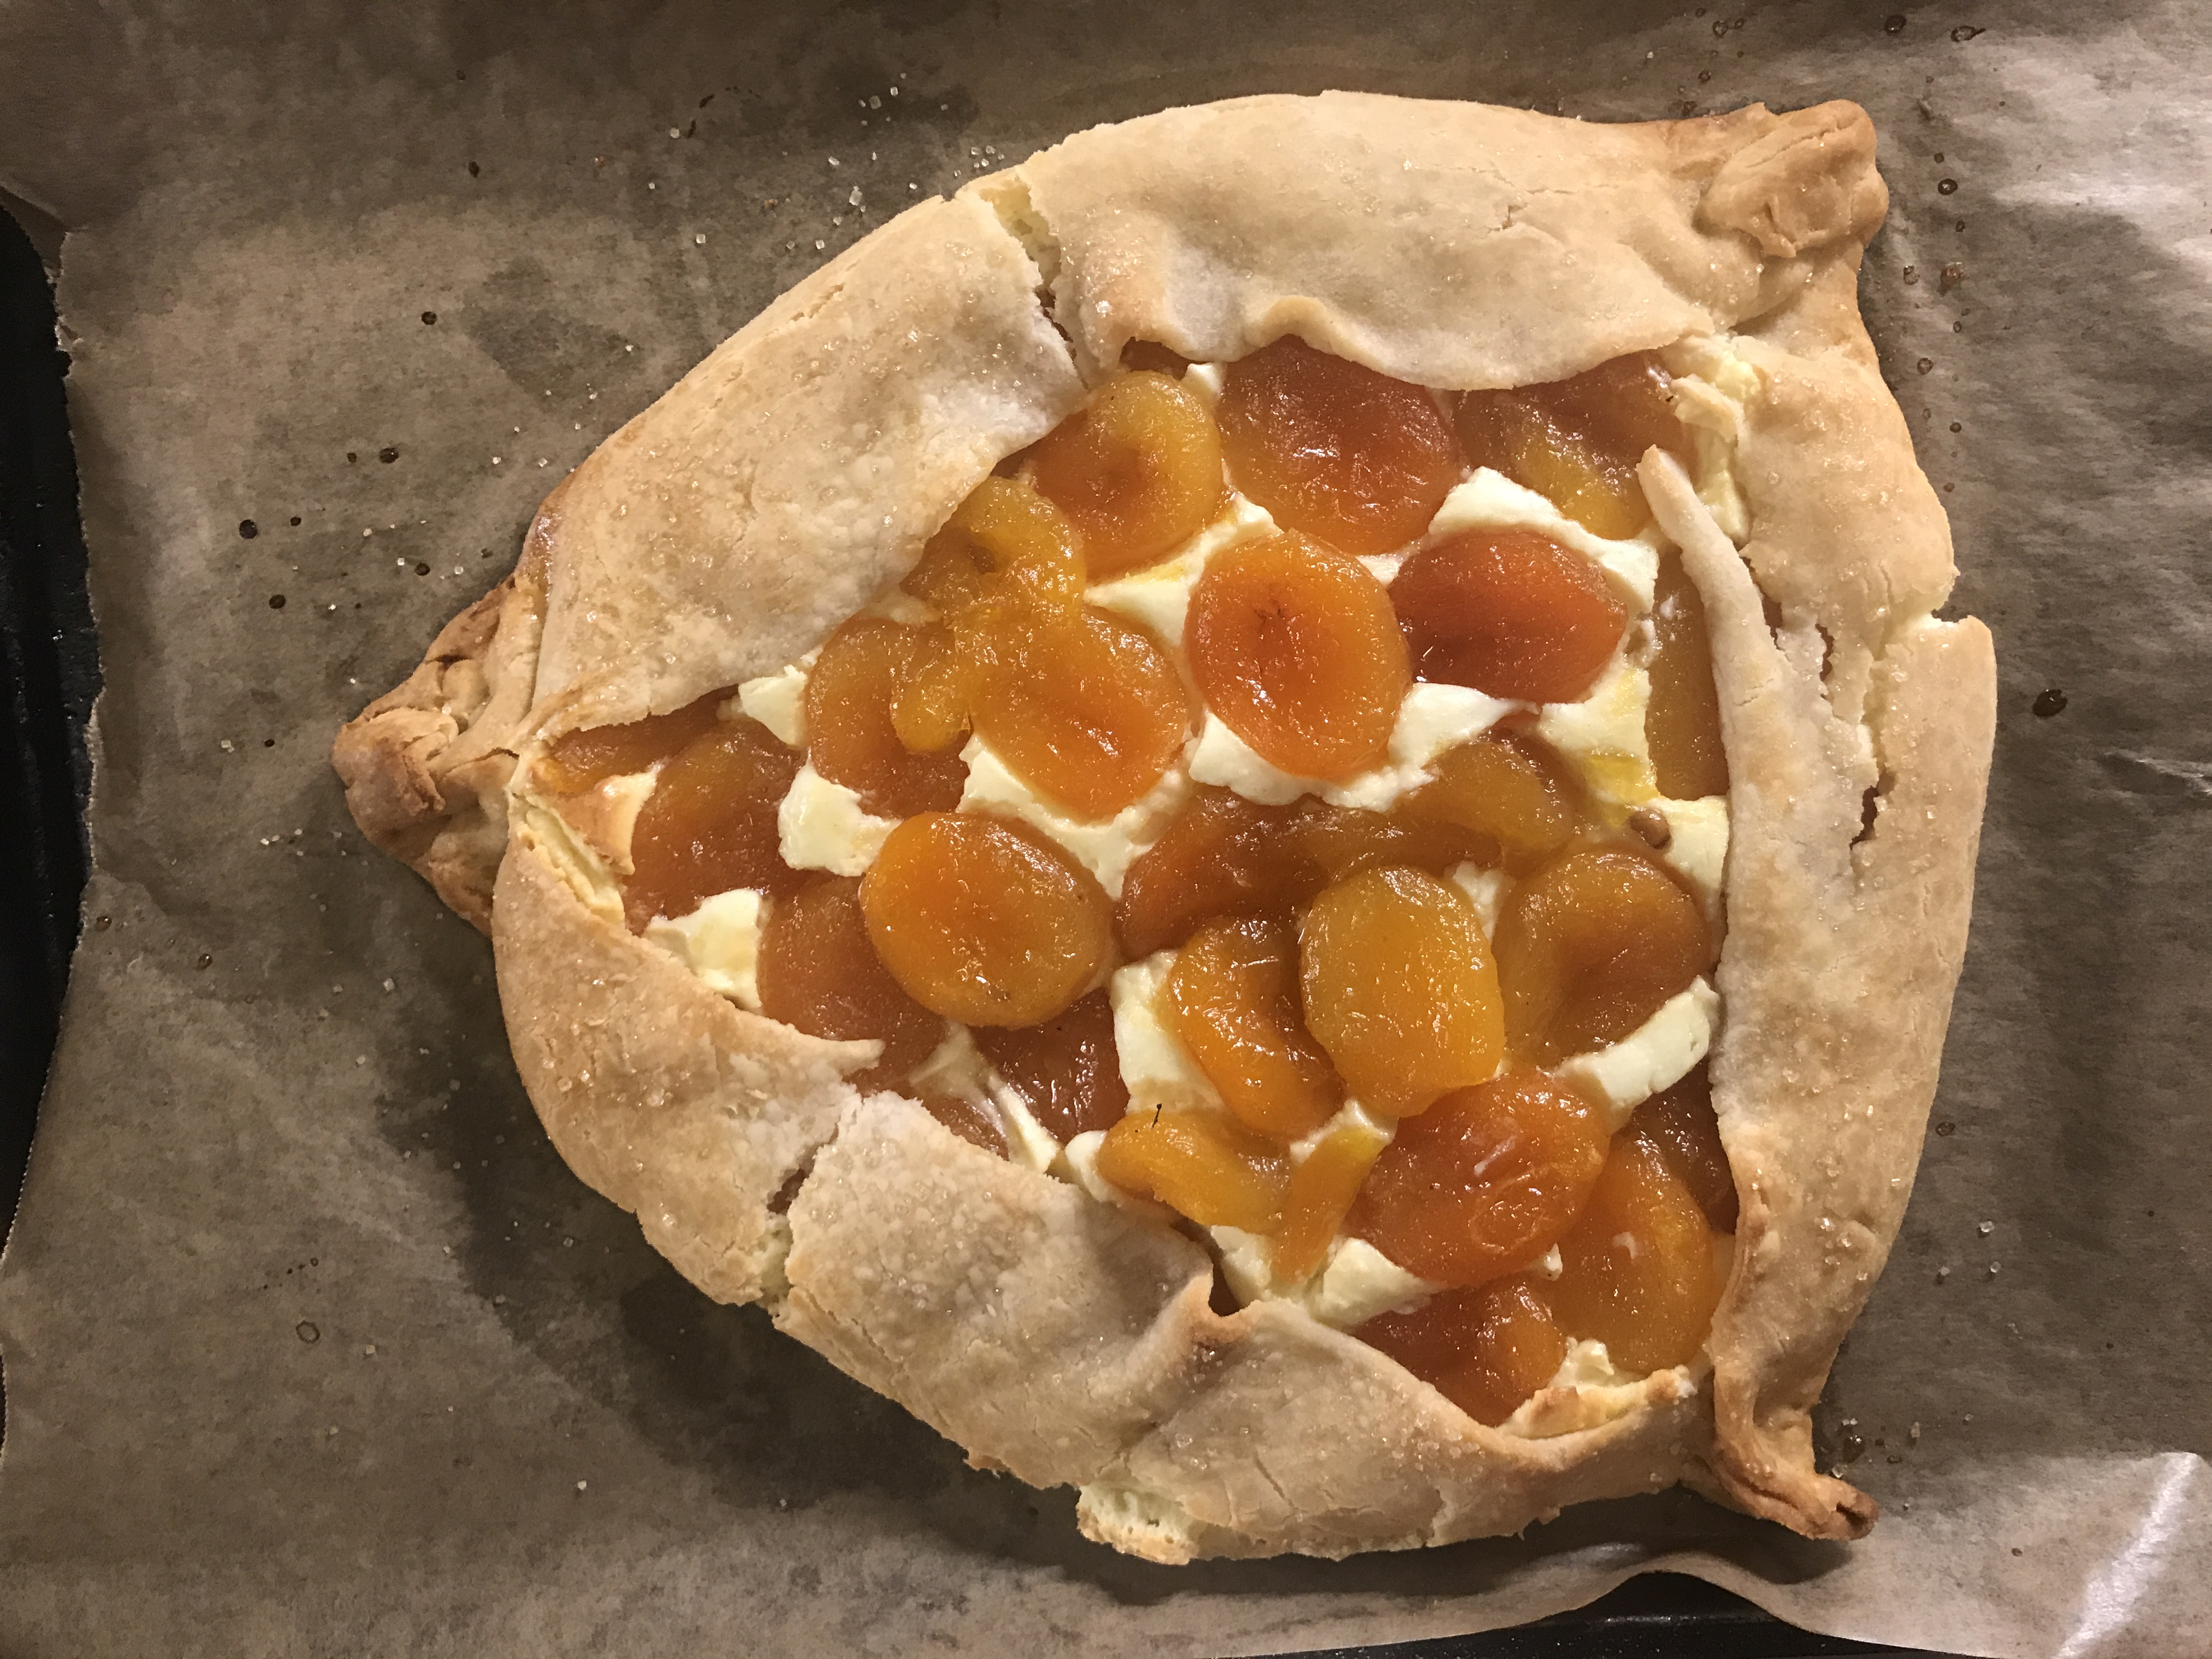 Faith Kramer's Rustic Hamantaschen Tart with Apricots and Goat Cheese Cheesecake Filling (Photo/Faith Kramer)